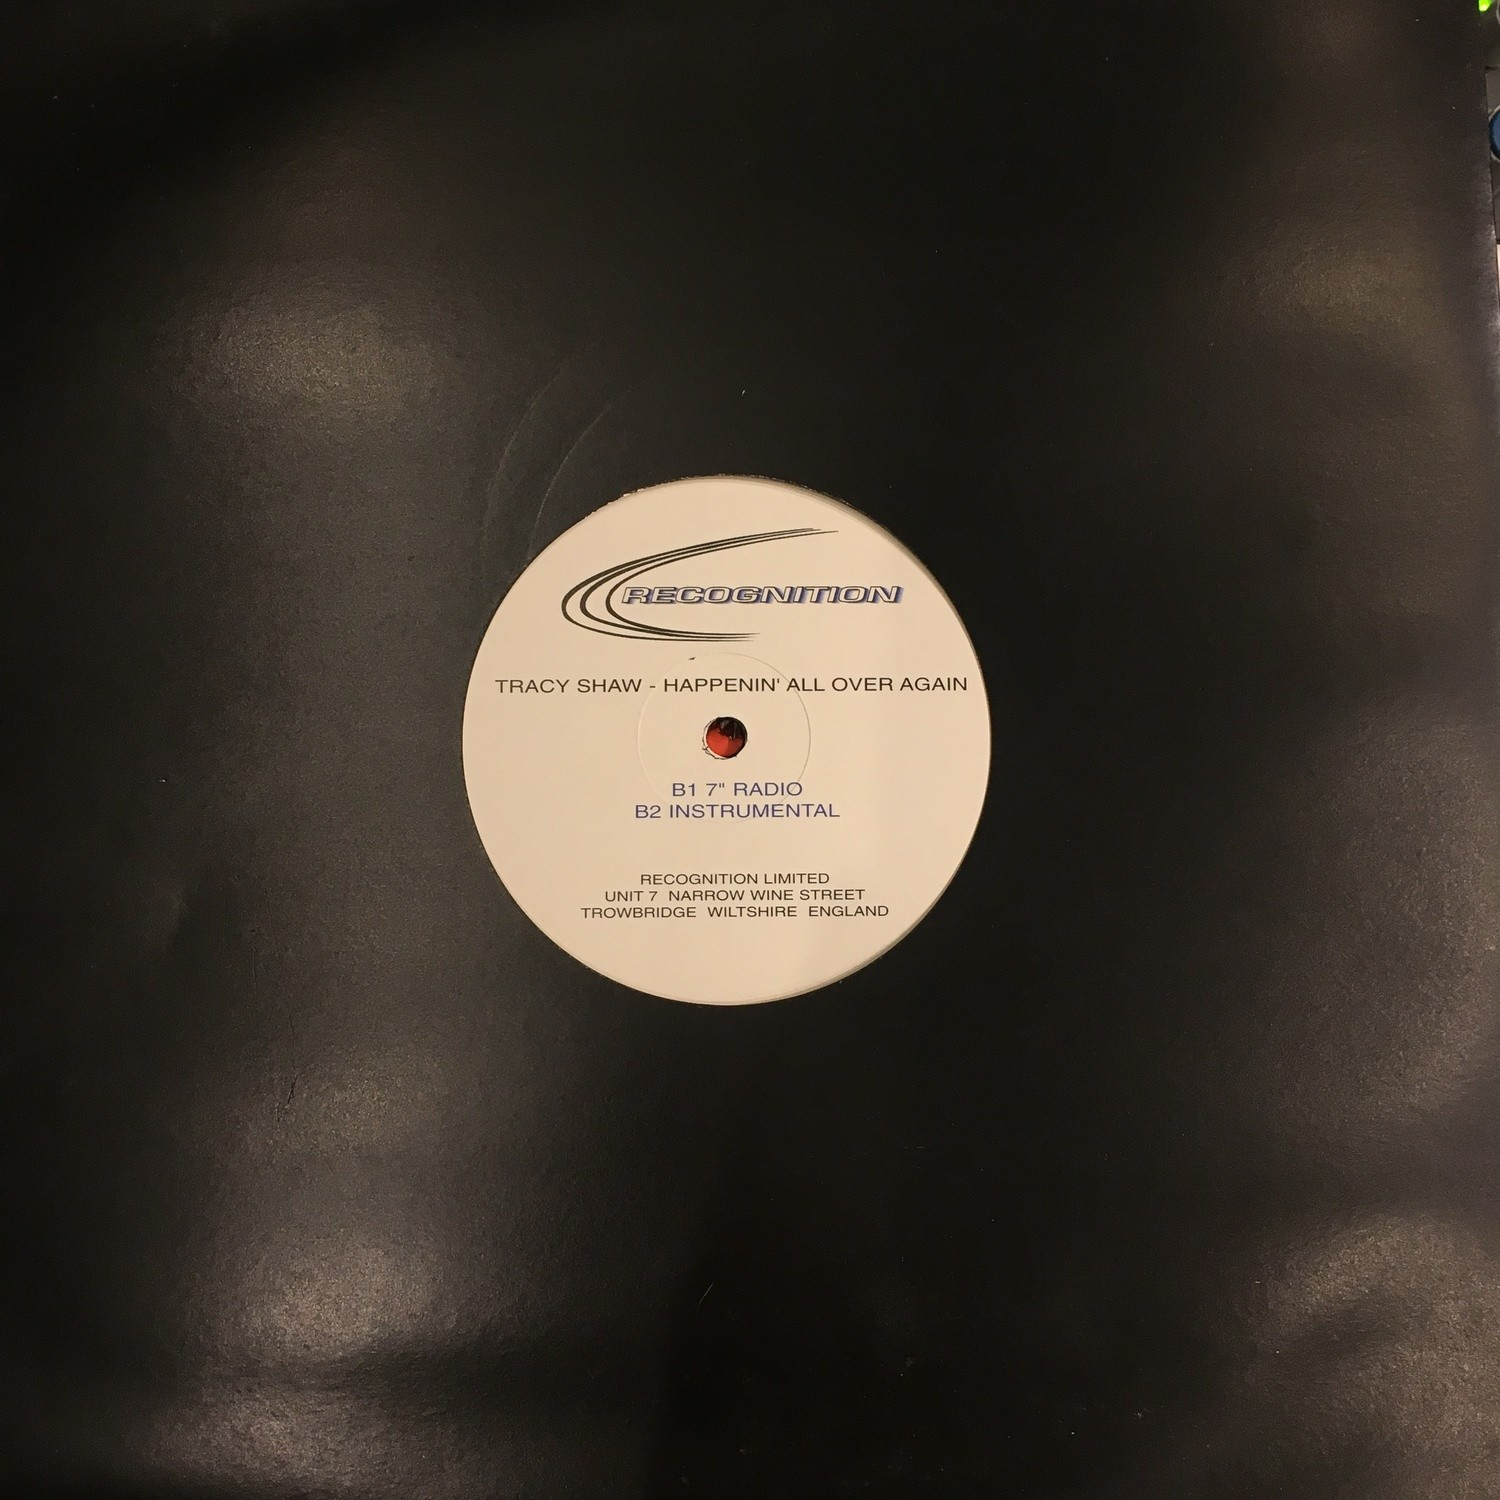 "Tracy Shaw - Happening All Over The World - Rare 12"" Club Promo Vinyl"